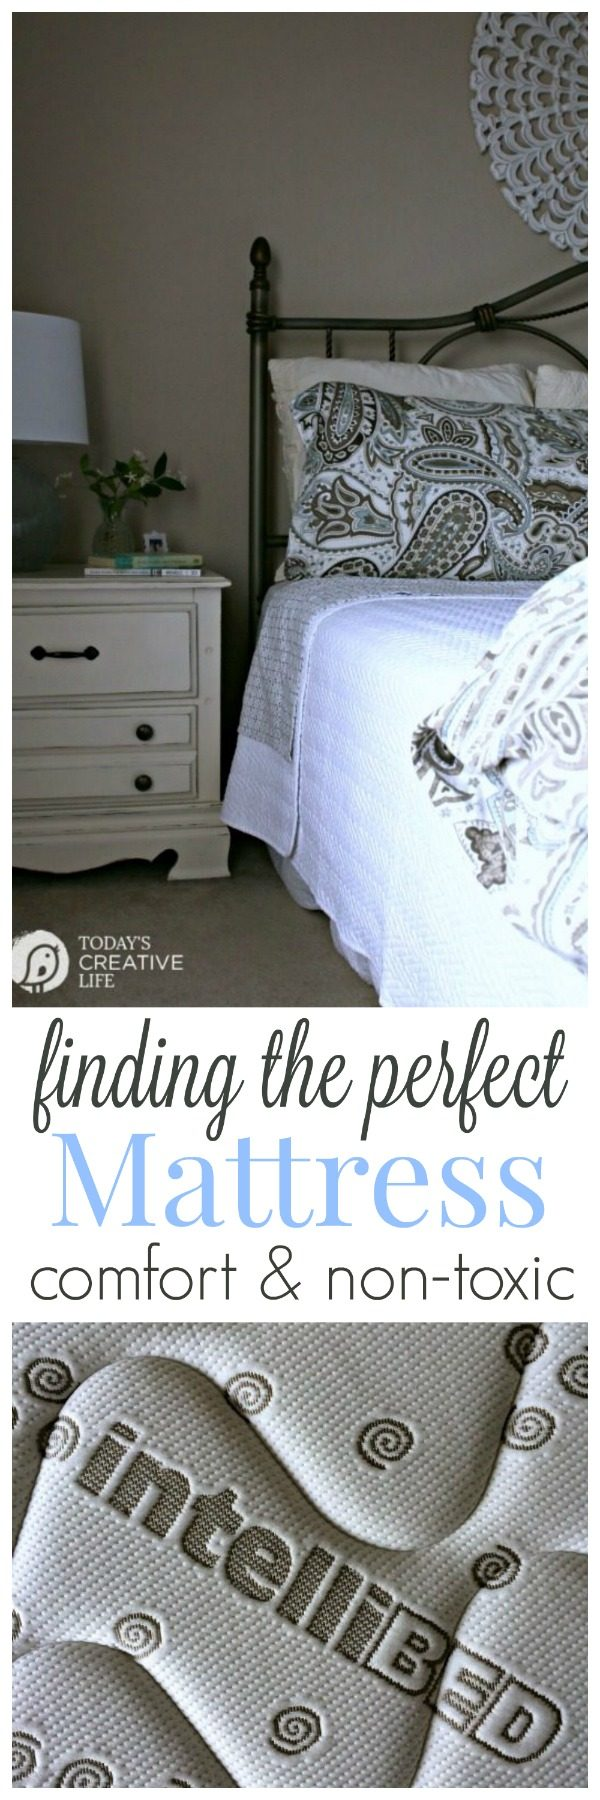 The BEST Mattress | intelliBED is non-toxic with a 30 year warranty. The best mattress you'll ever buy! It's the most comfortable mattress I've ever slept on. See Today's Creative Life for more info.